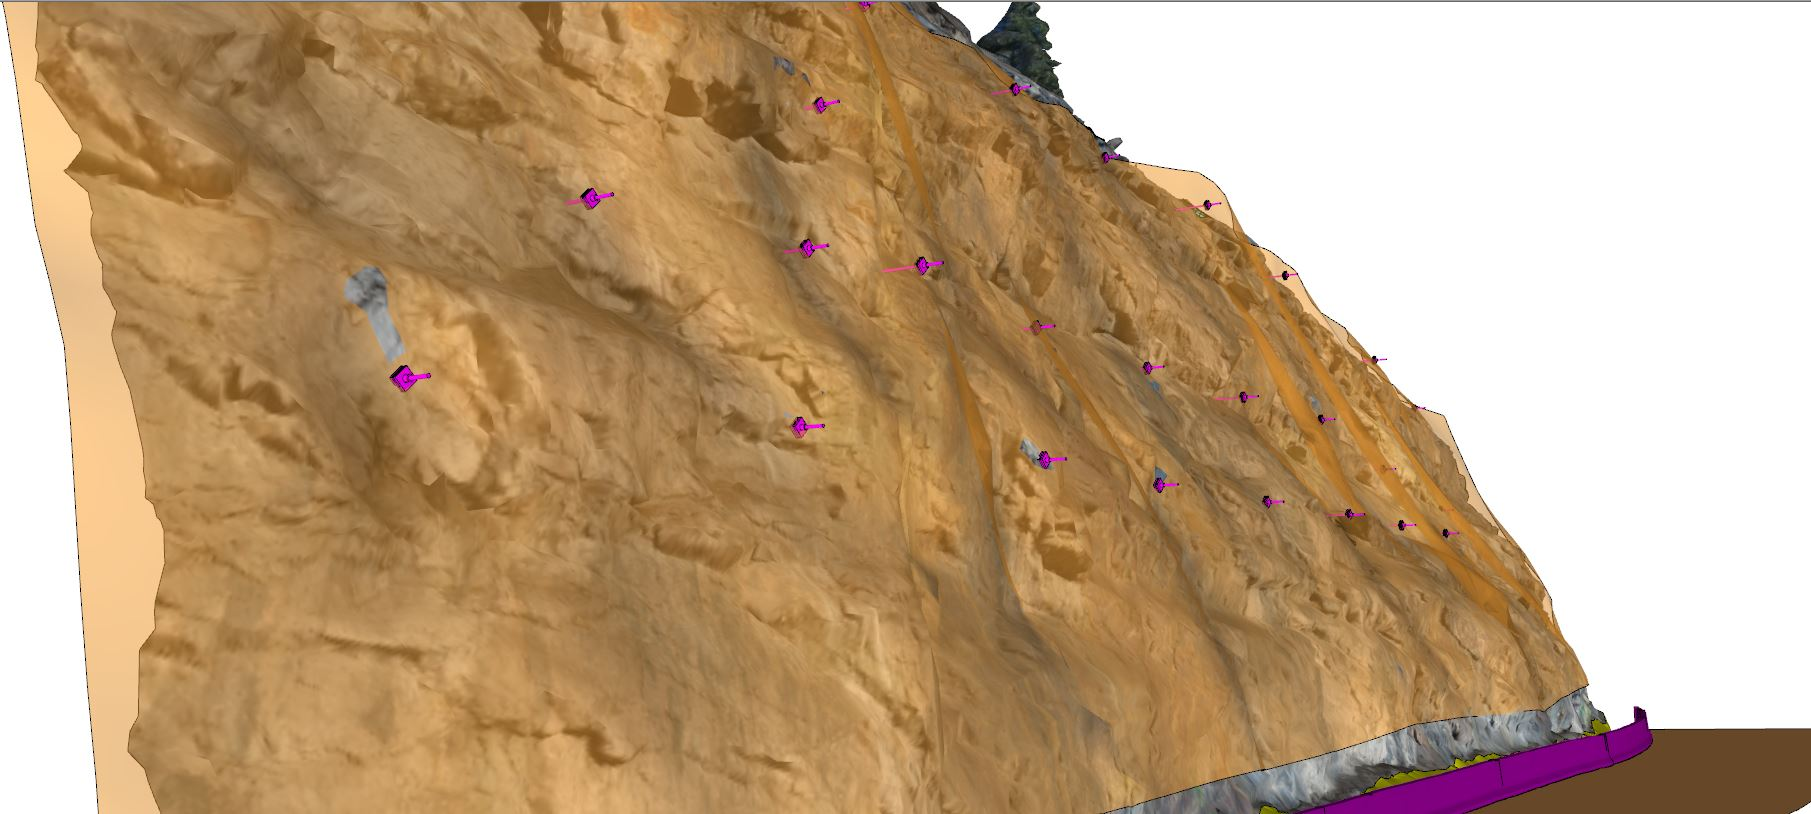 3D Model of rockfall mesh system